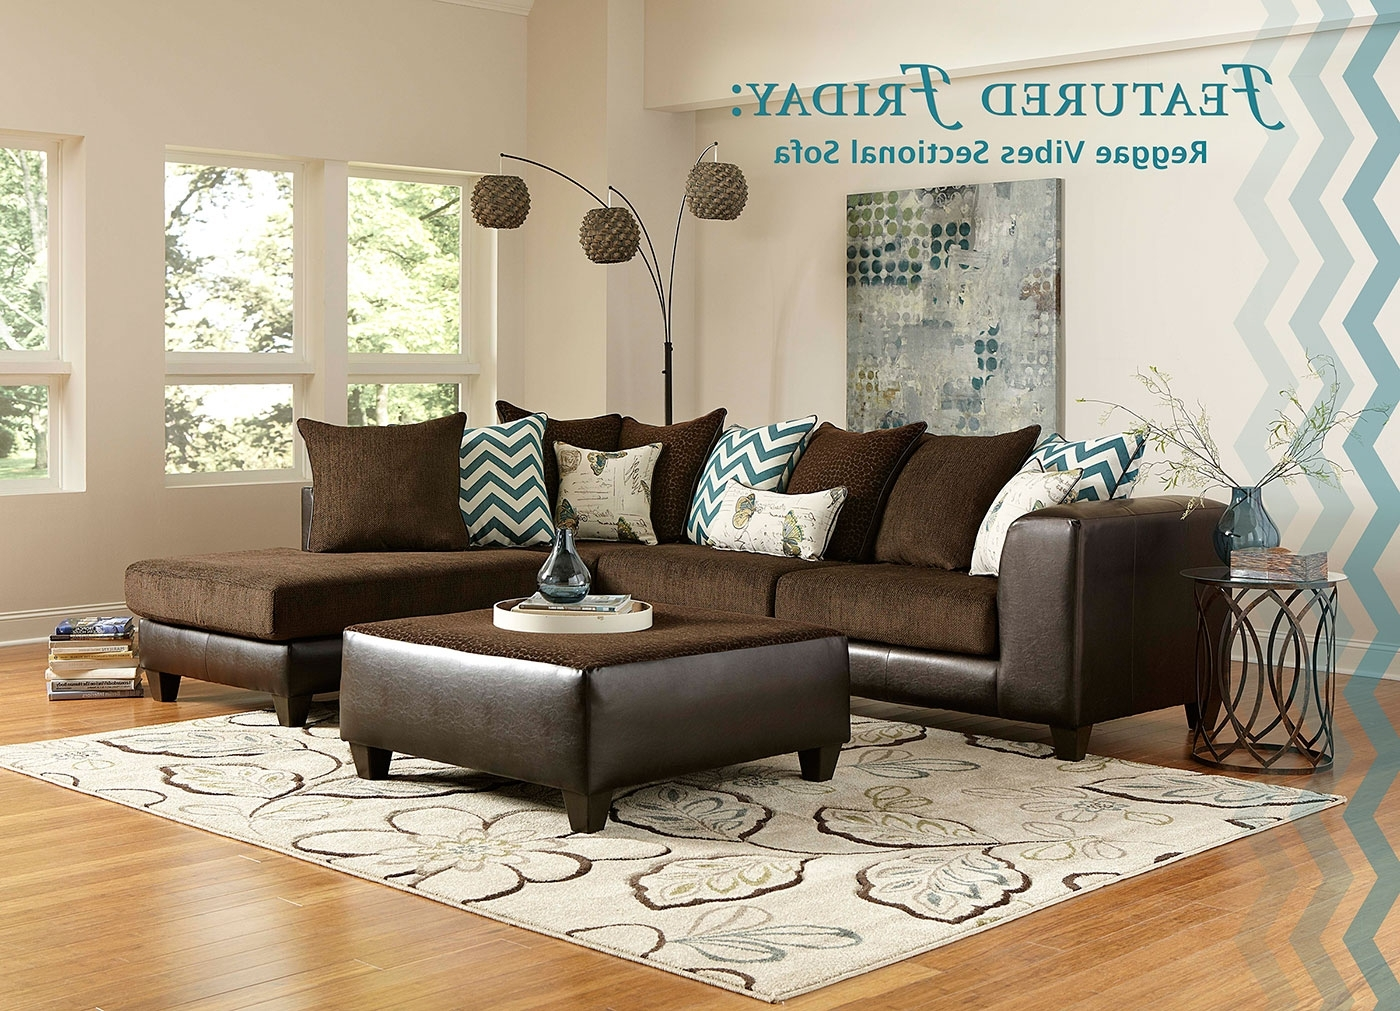 Popular Furniture: American Freight Sectionals For Luxury Living Room Pertaining To Sectional Sofas In Savannah Ga (View 12 of 15)